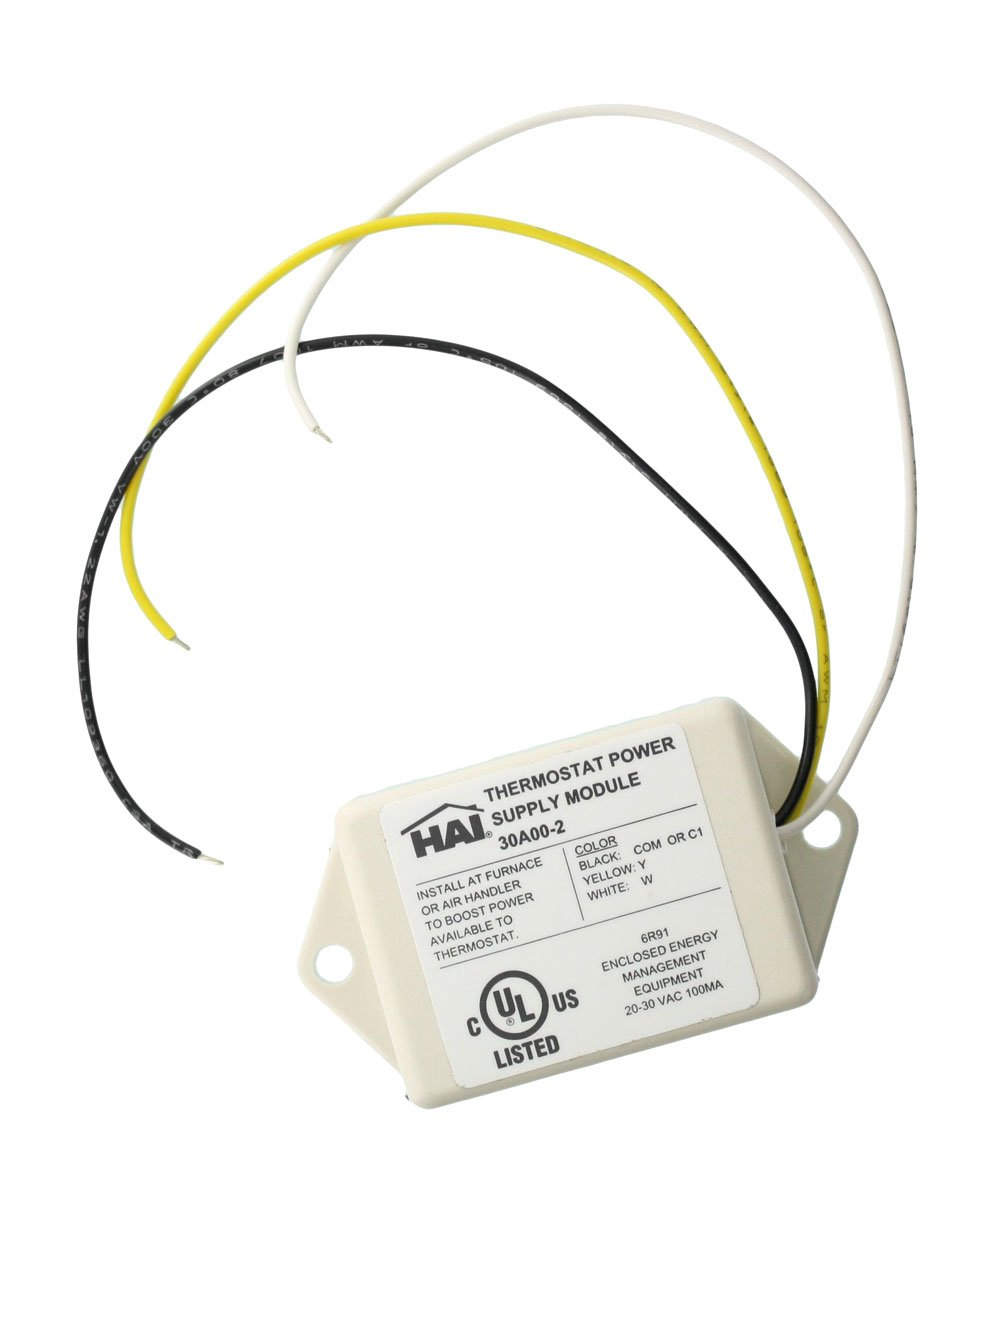 leviton 30a00 2 omnistat2 thermostat power supply module household